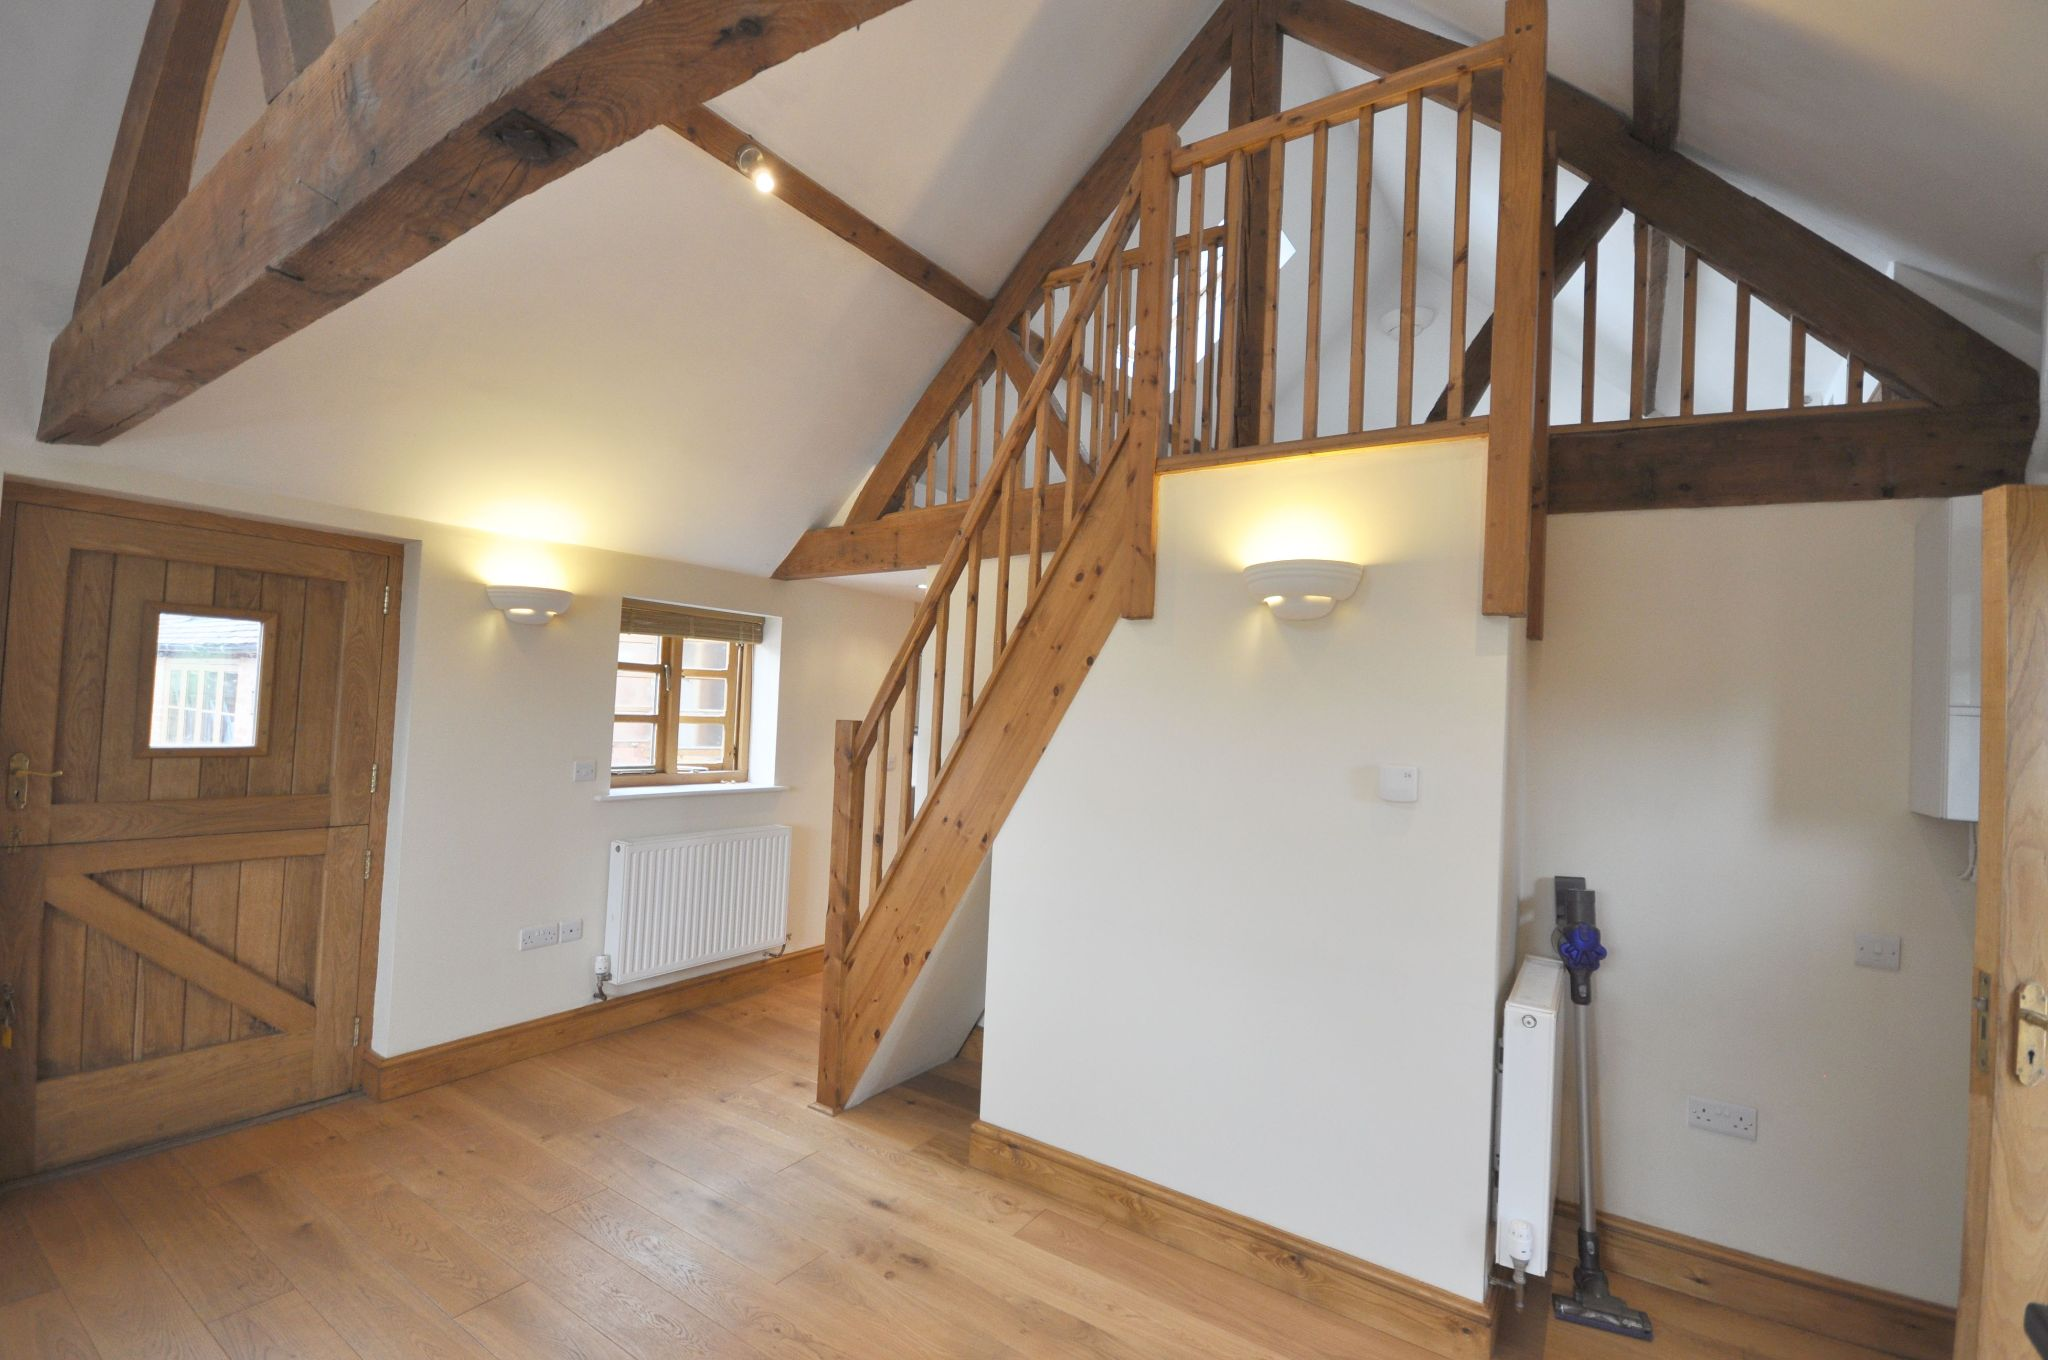 2 Bed Barn Character Property To Rent - Photograph 2